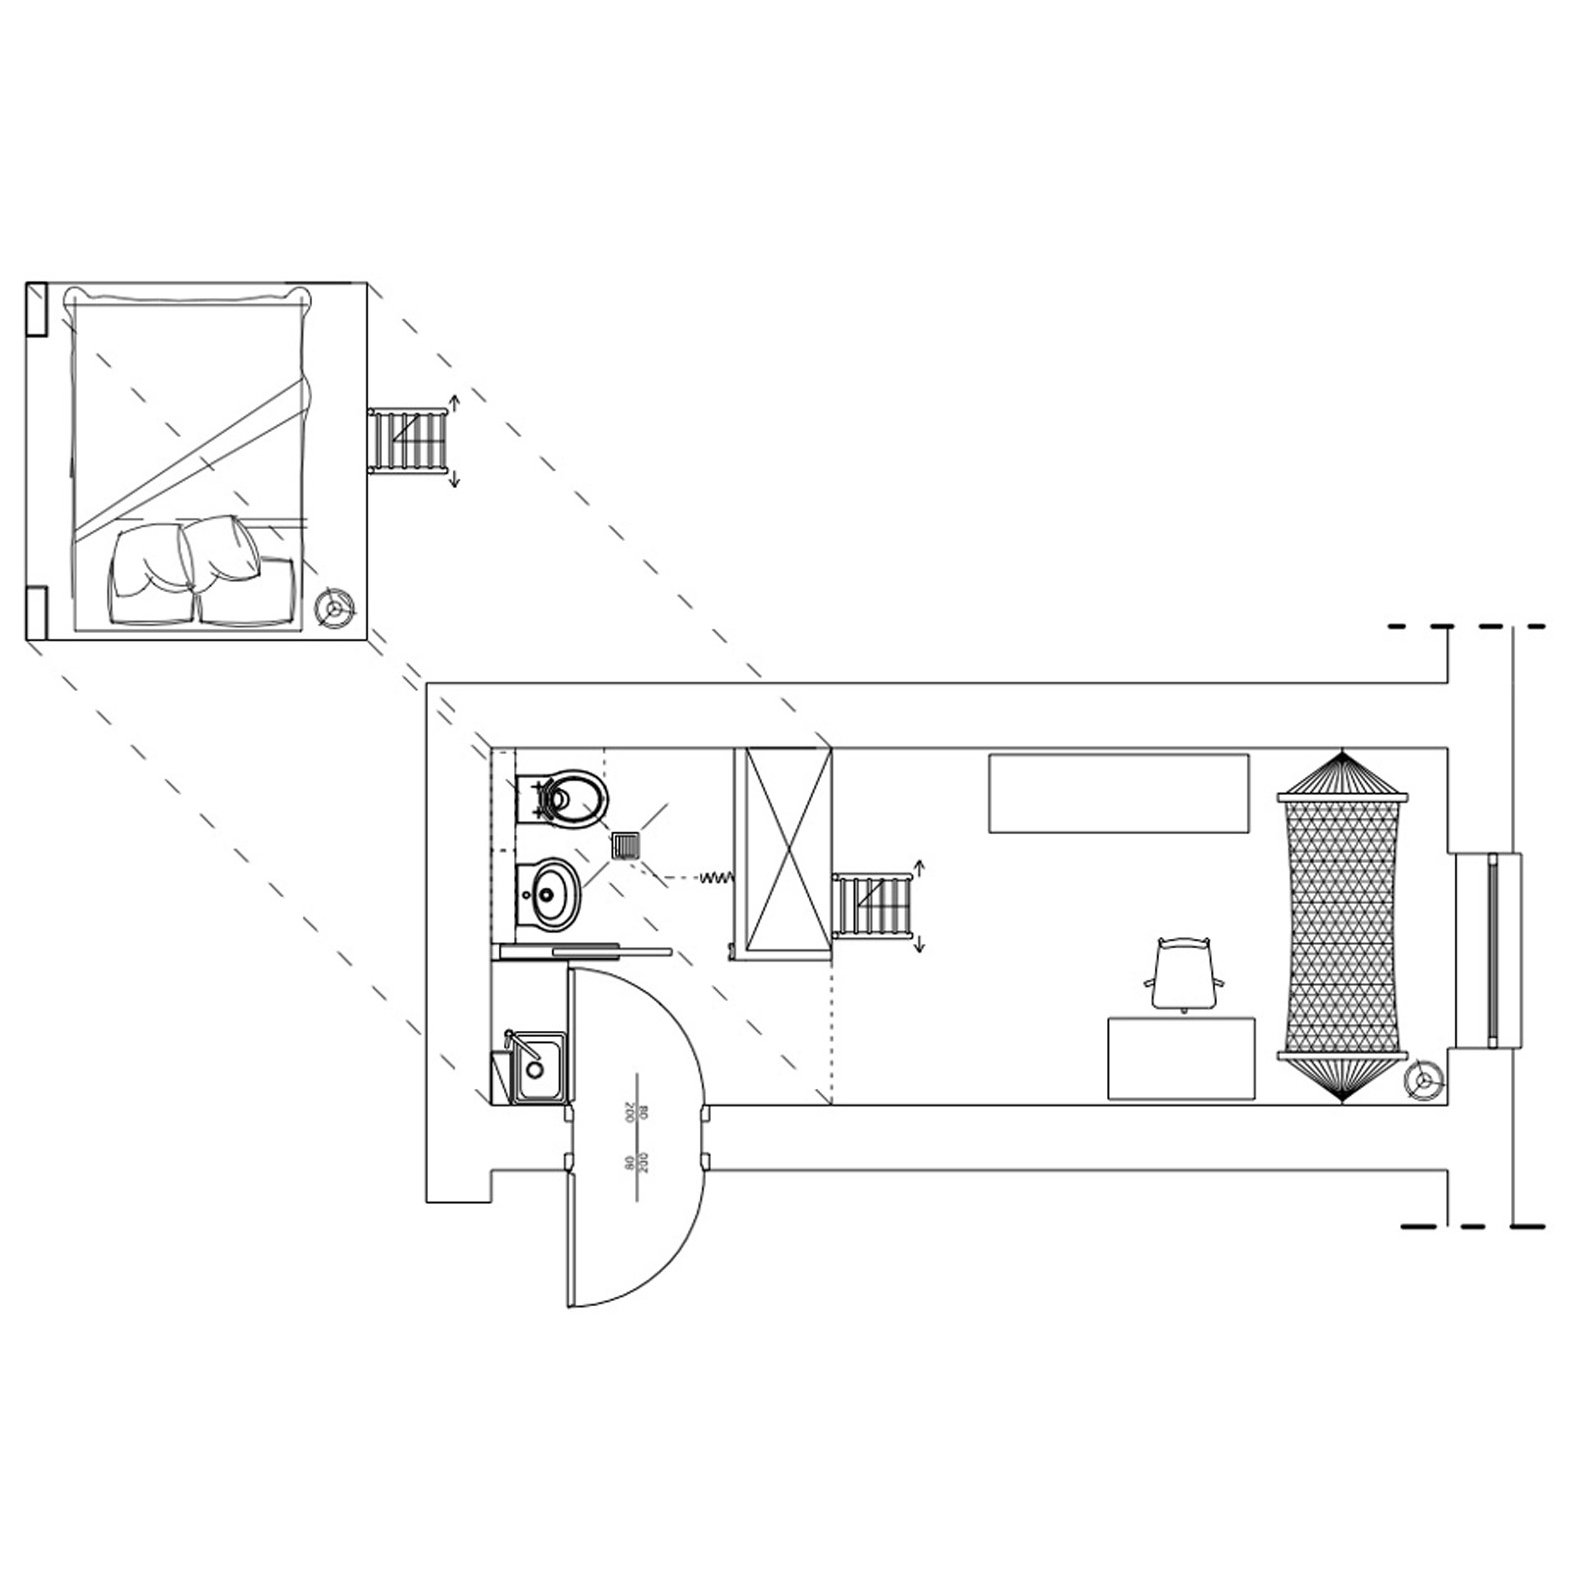 Micro apartment and micro home floor plans